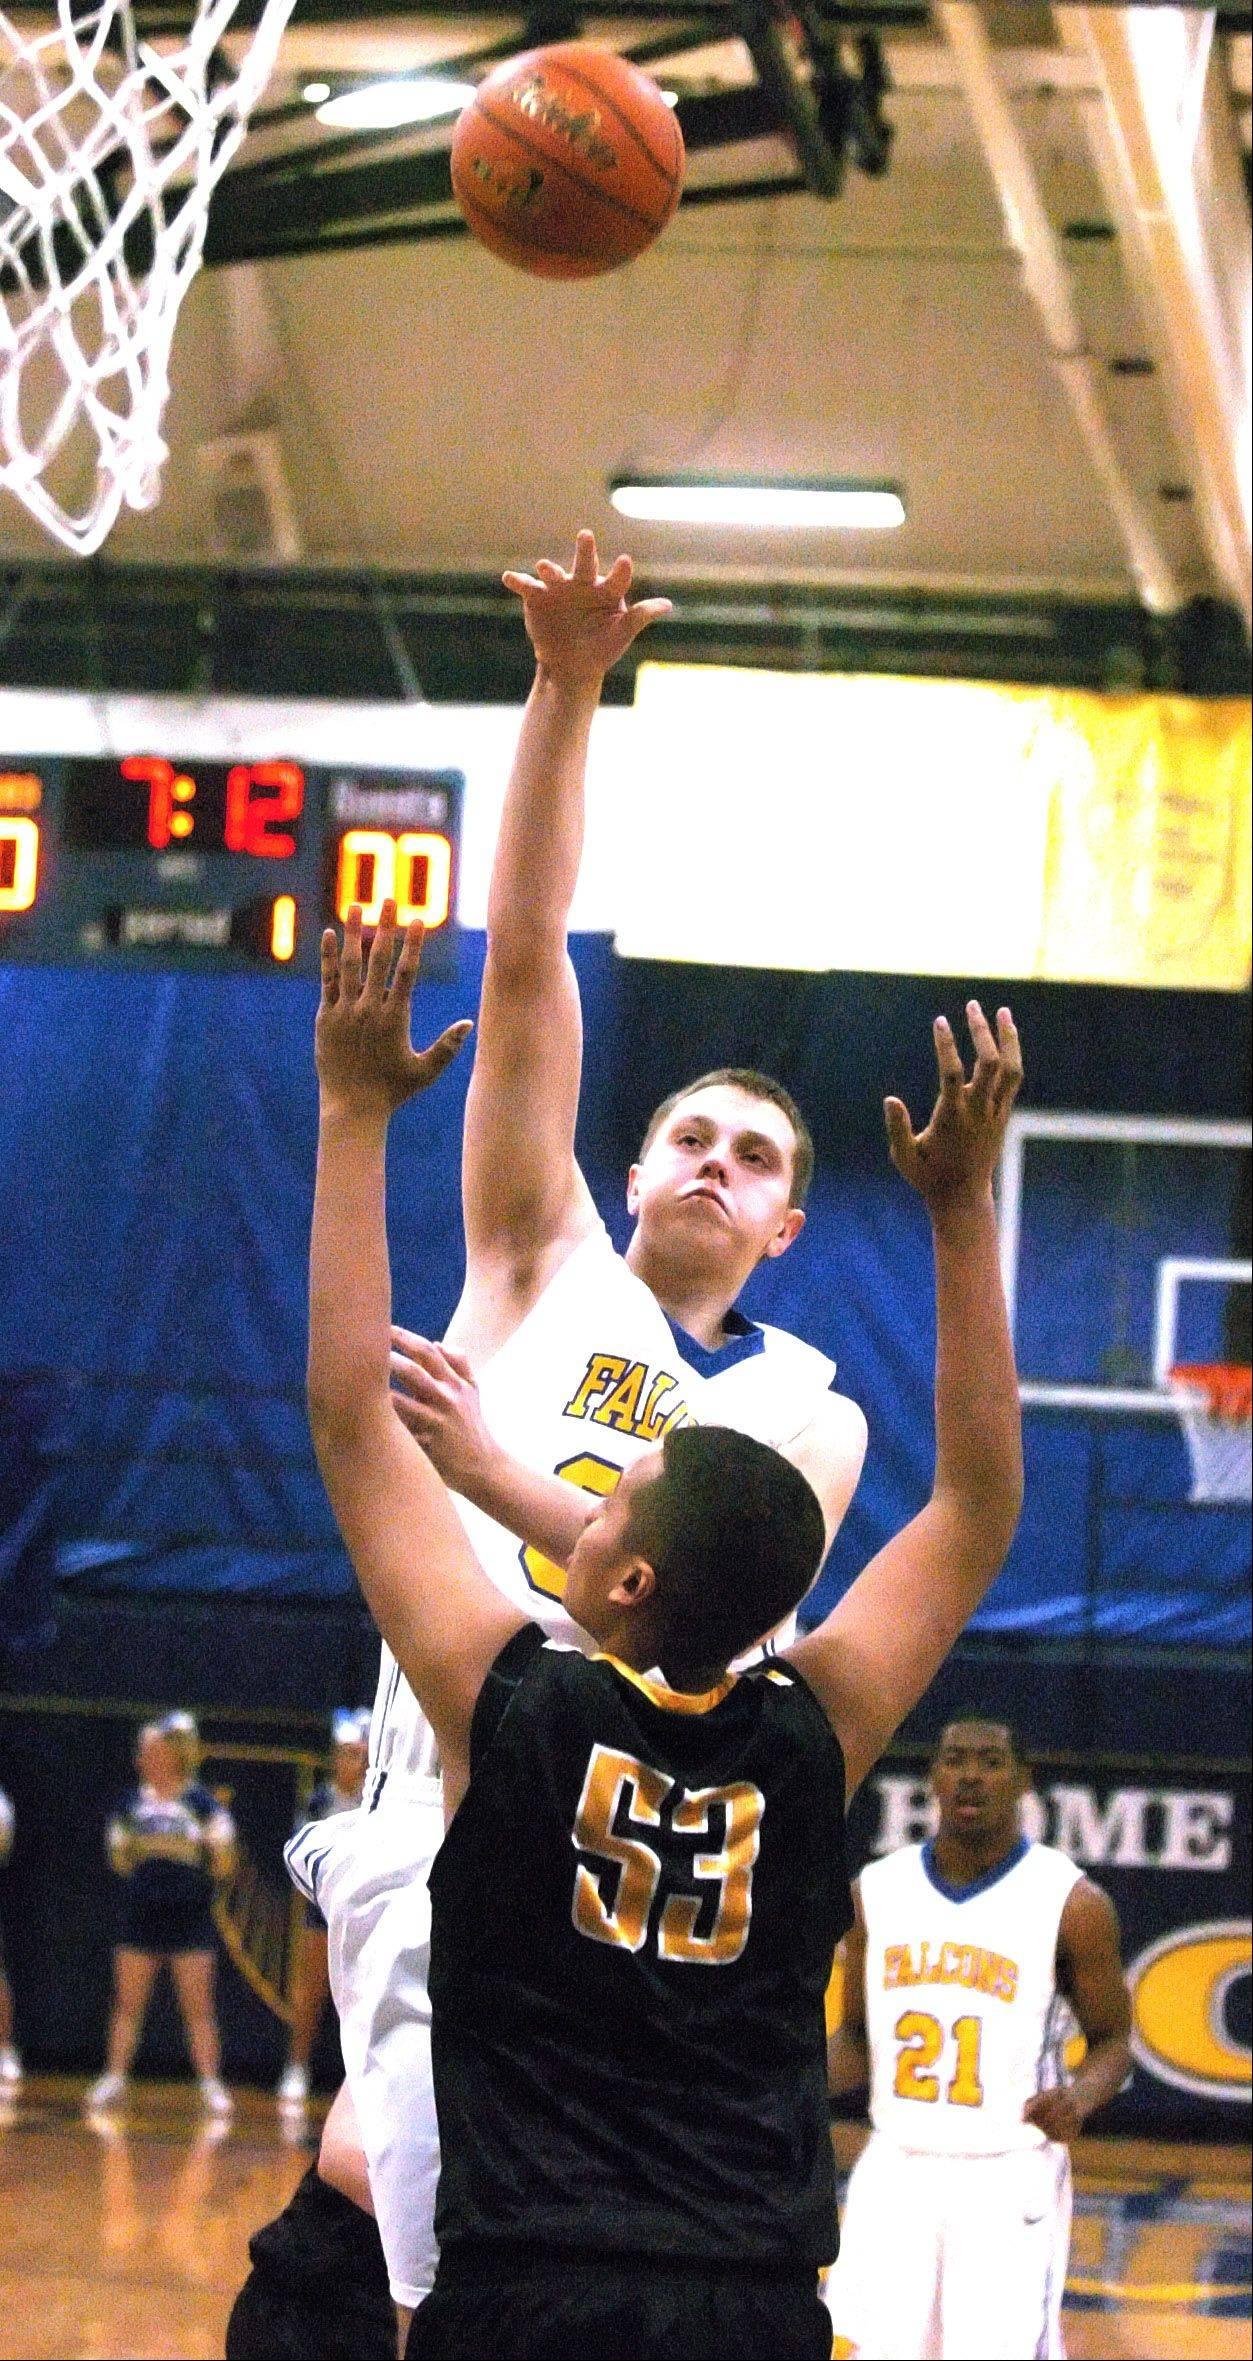 Andrew Zelis of Wheaton North puts up a shot over Barret Benson of Hinsdale South during the Hinsdale South at Wheaton North game Tuesday.